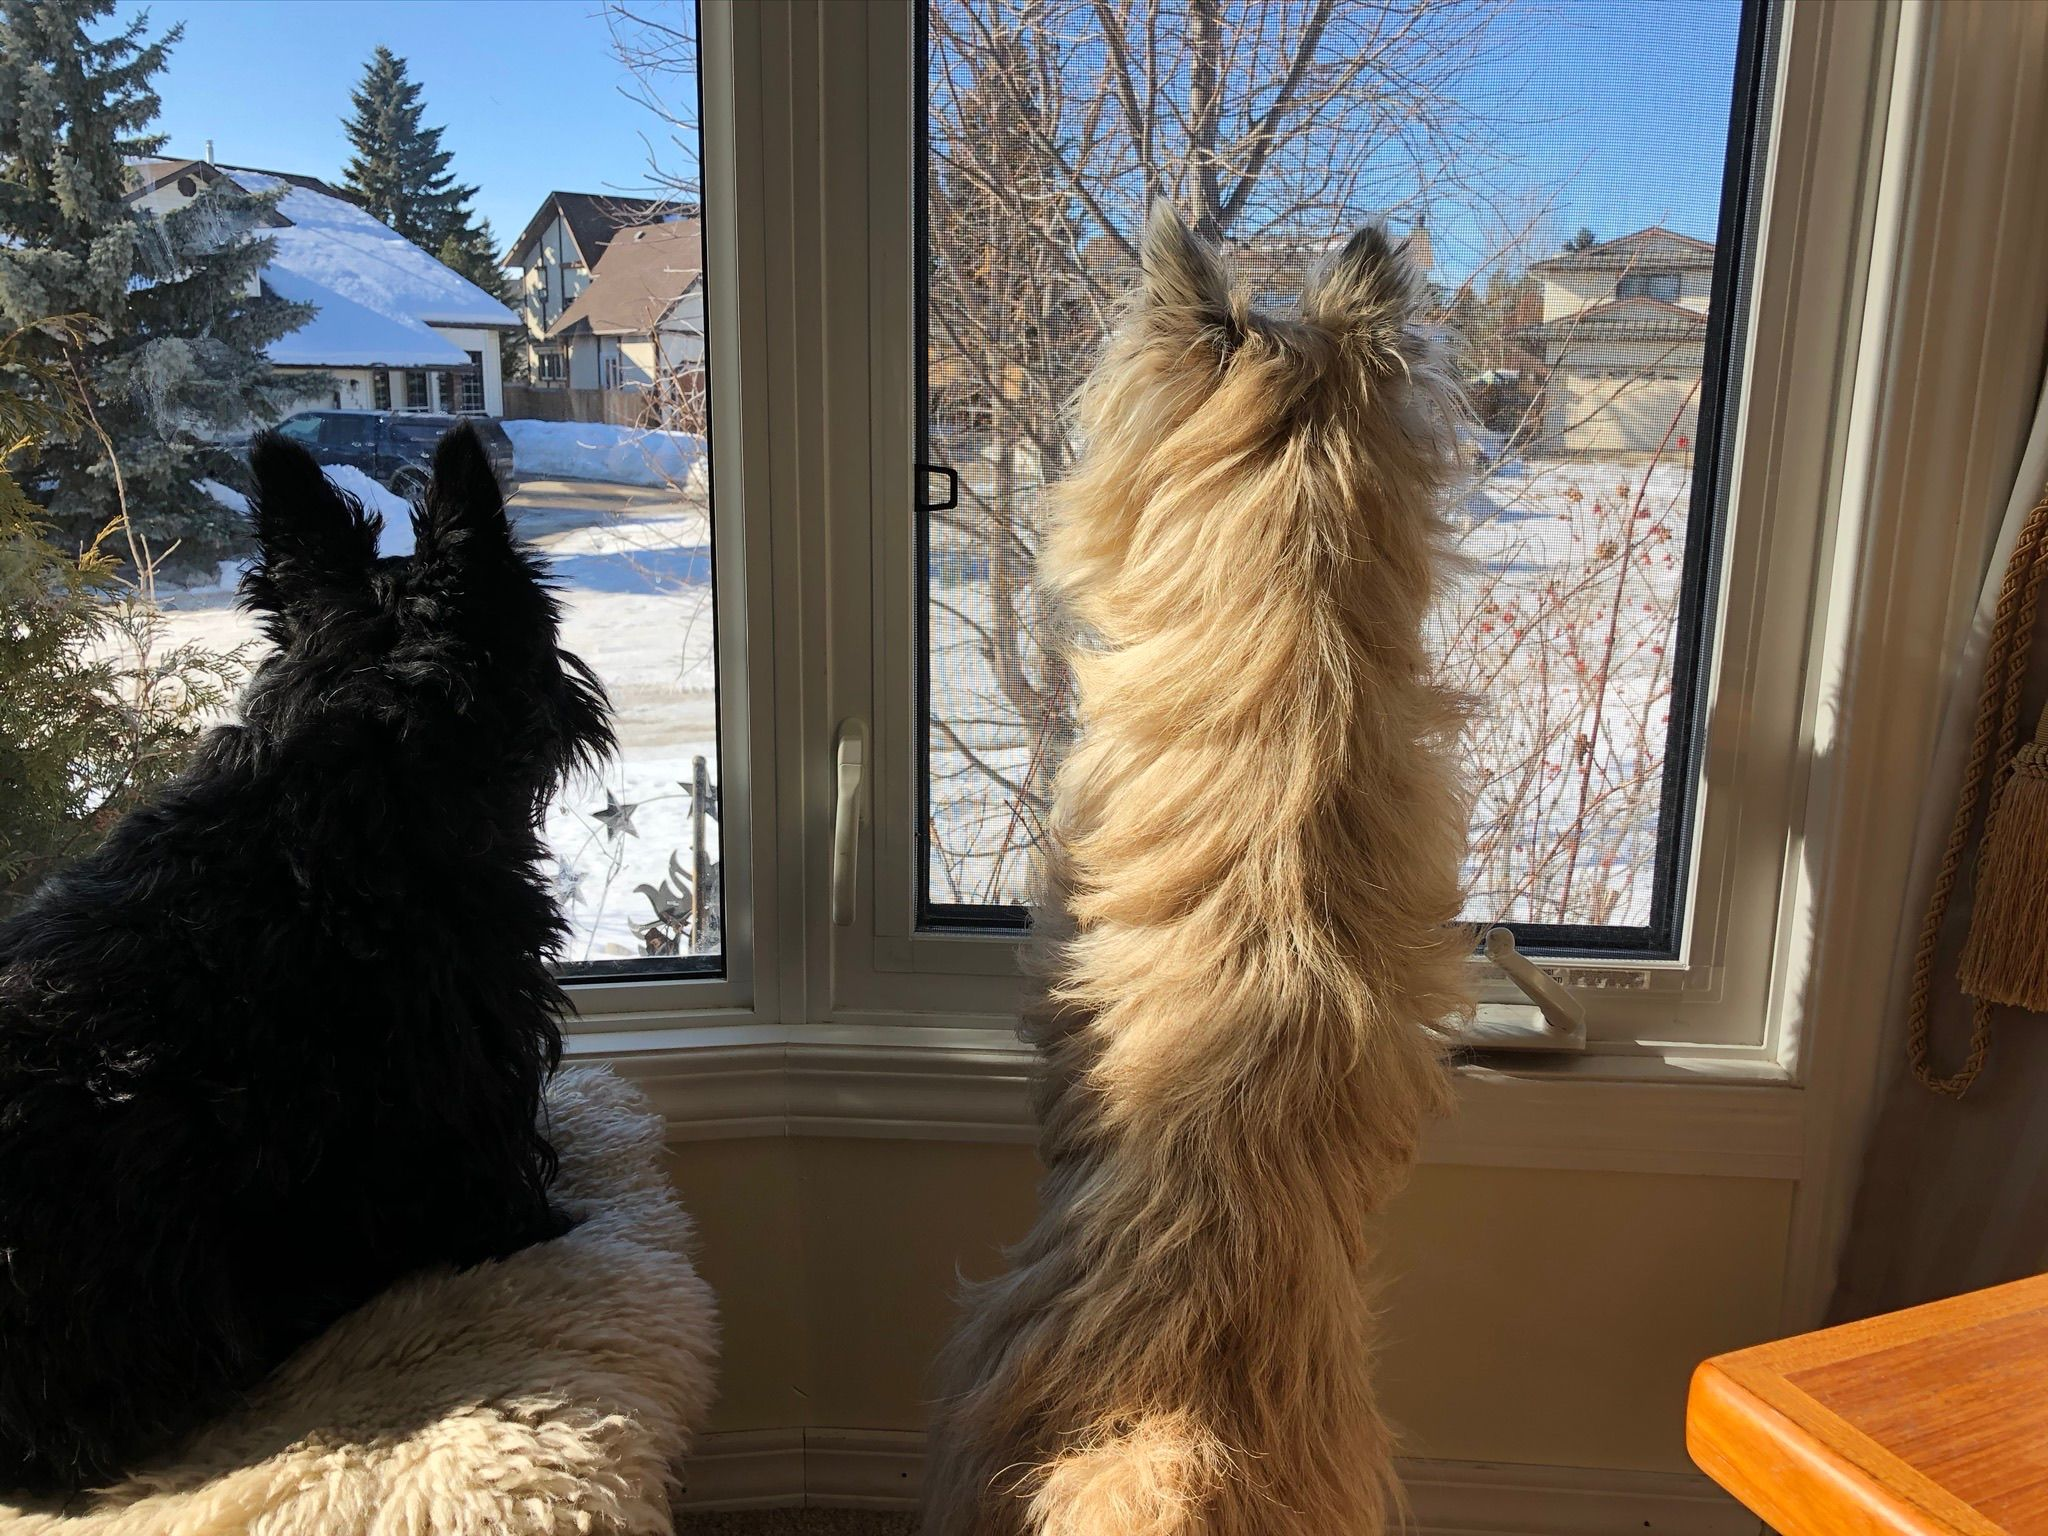 The kids on watch